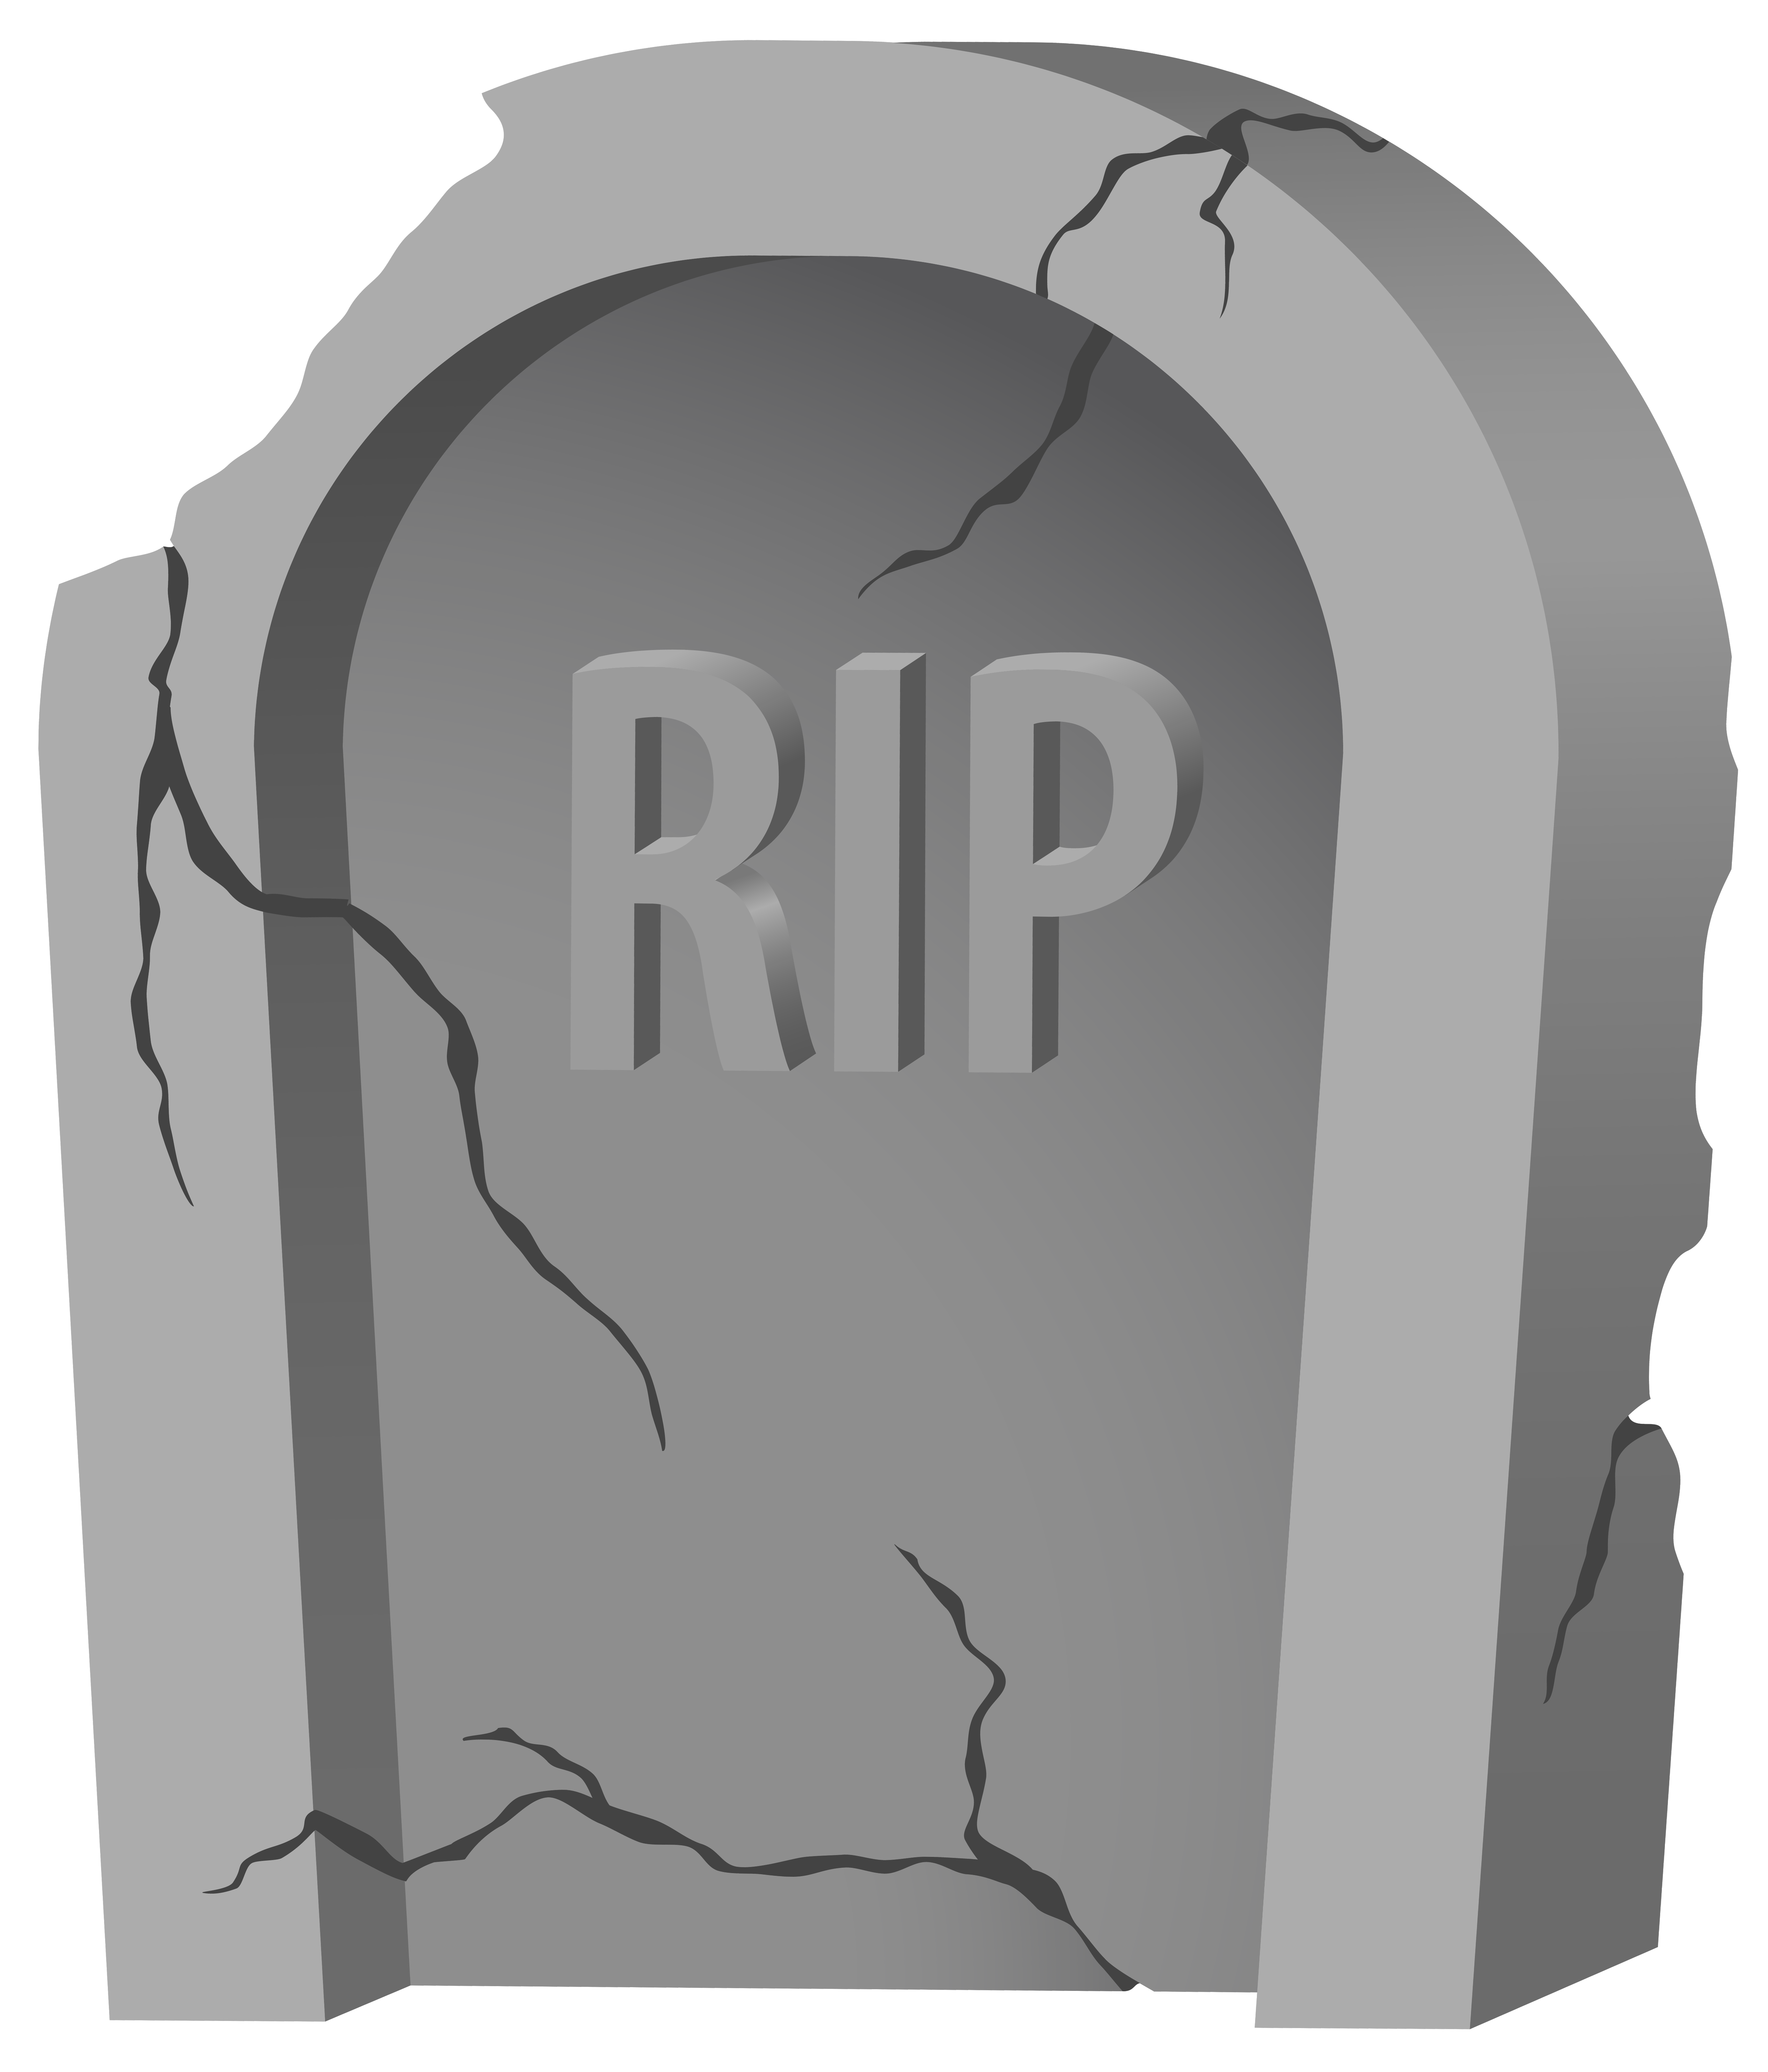 Tombstone clipart png clipart images gallery for free.